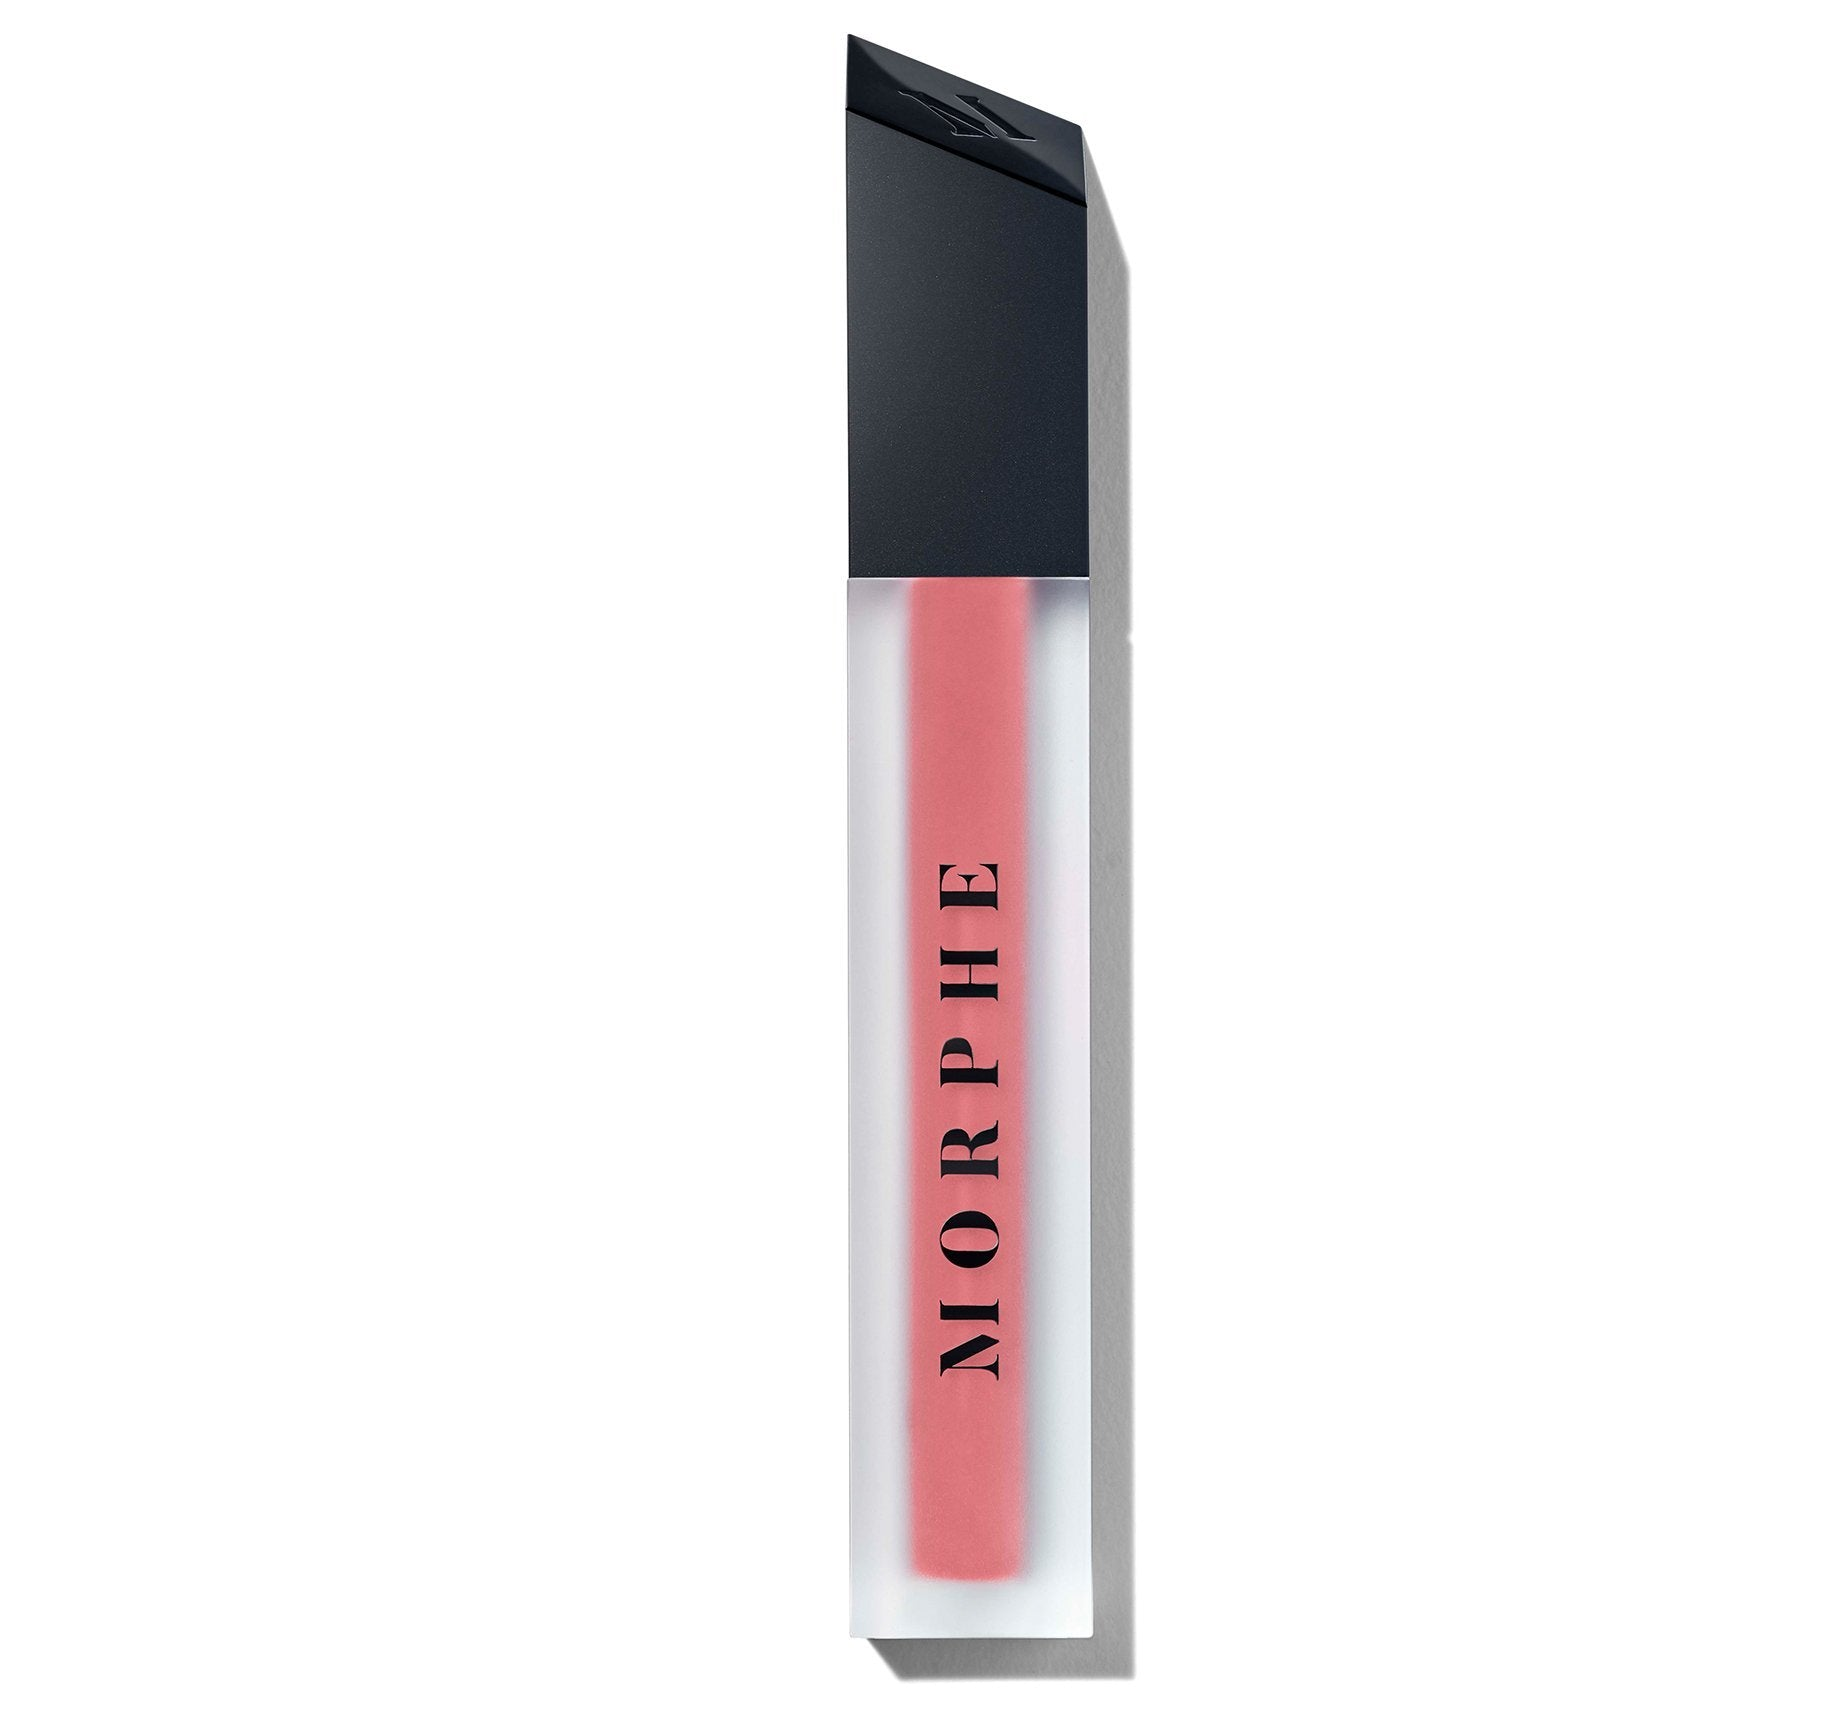 MATTE LIQUID LIPSTICK - JEALOUSY, view larger image